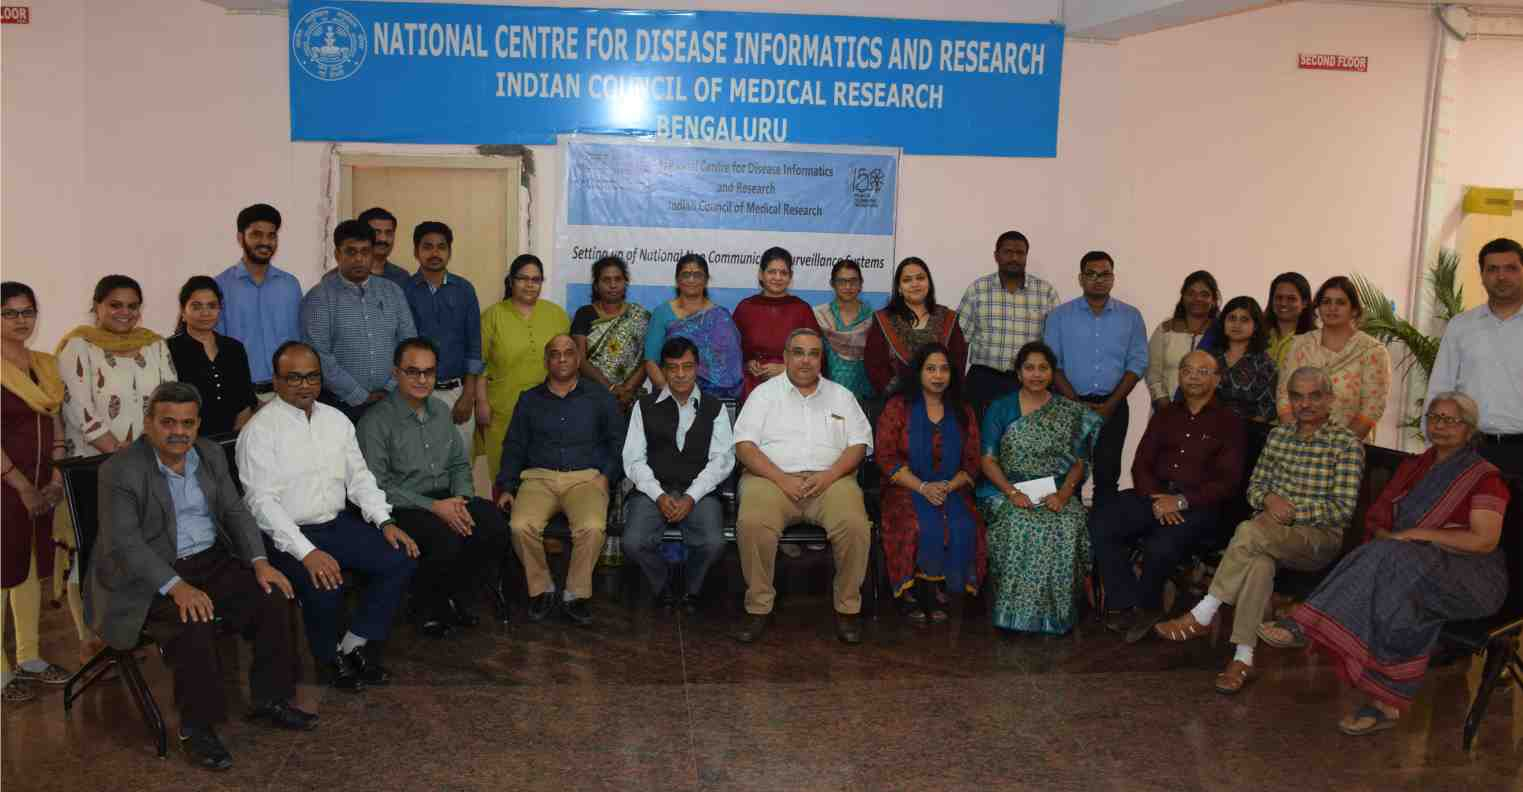 Brainstorming meeting of multisectoral experts on developing a framework for national level Non- Communicable Disease (NCD) Surveillance system on 28th March 2019, at NCDIR Bengaluru.